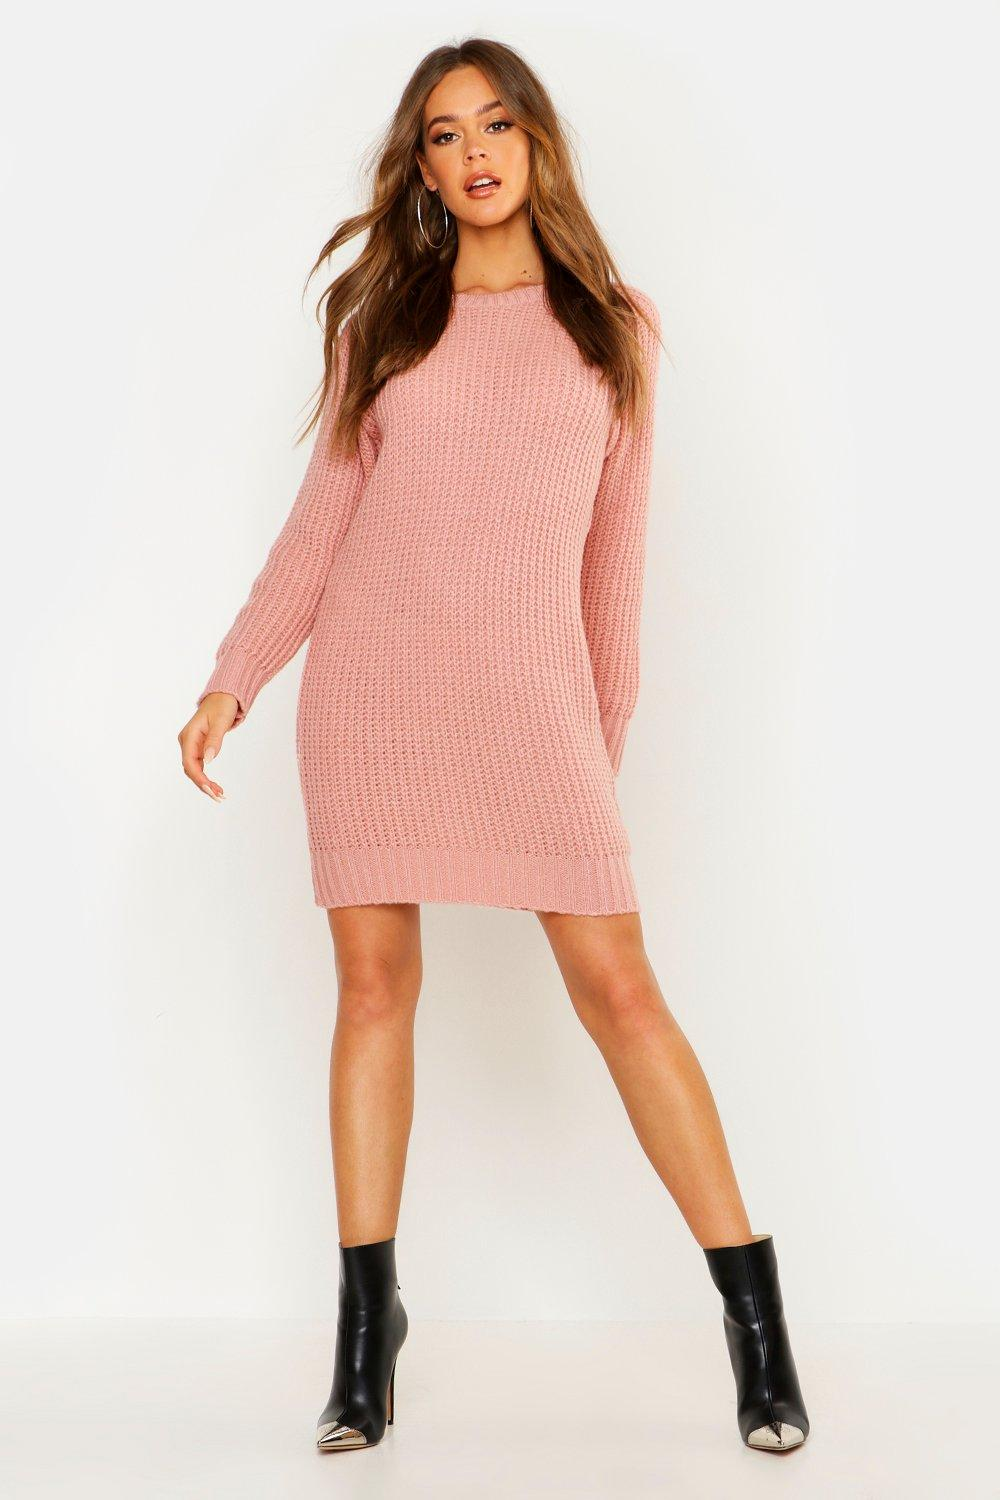 3114830aba Womens Blush Soft Knit Sweater Dress. Hover to zoom